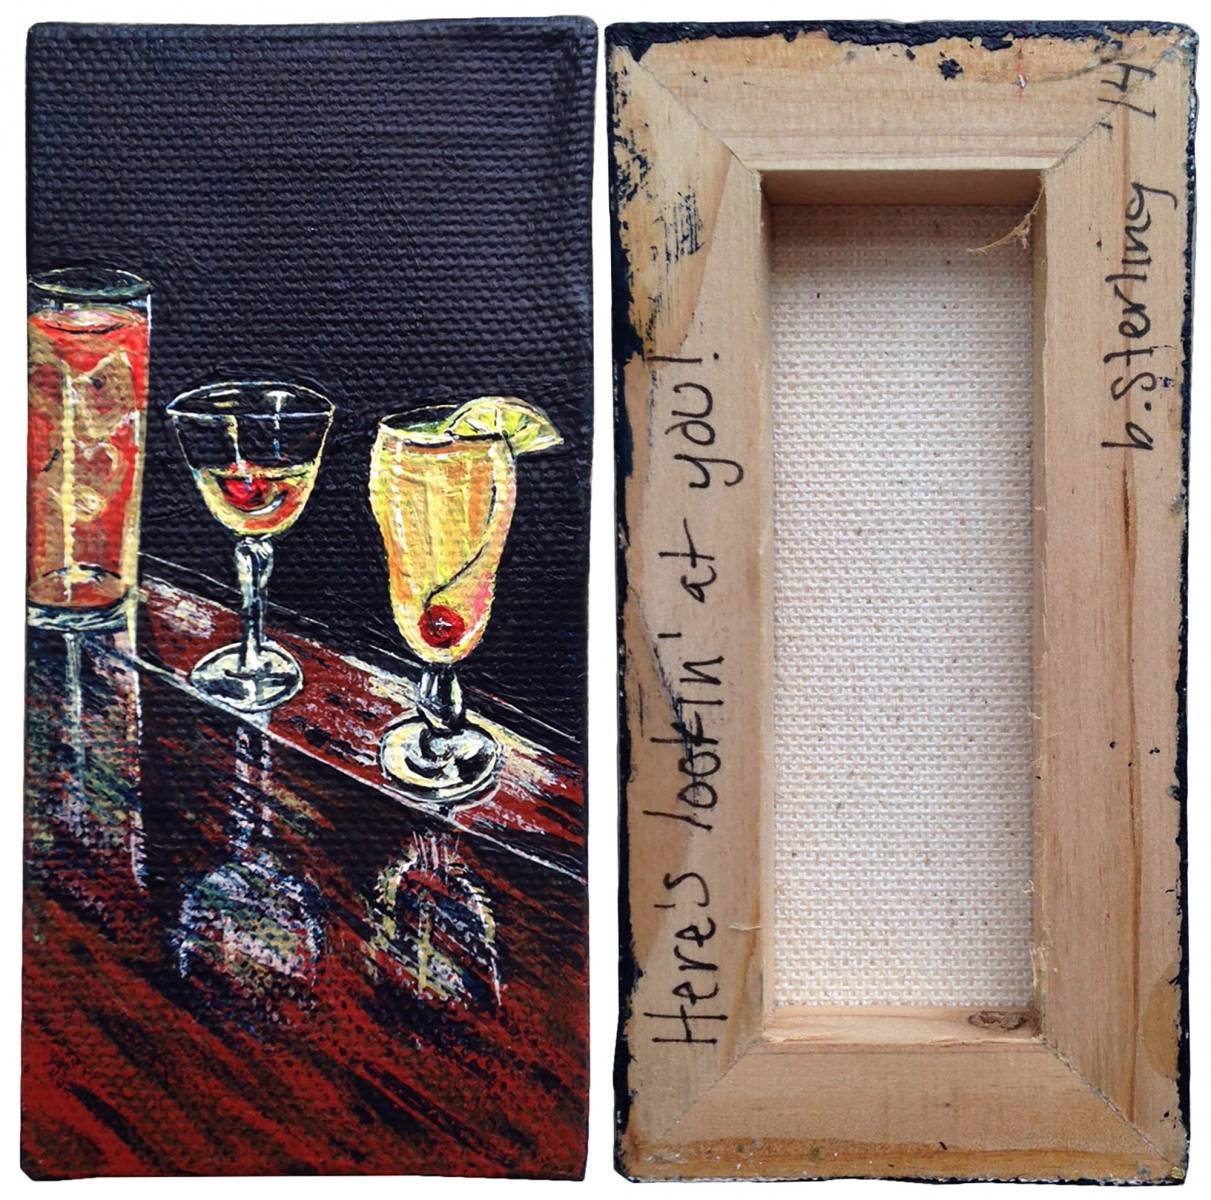 05-small-studies-cocktails